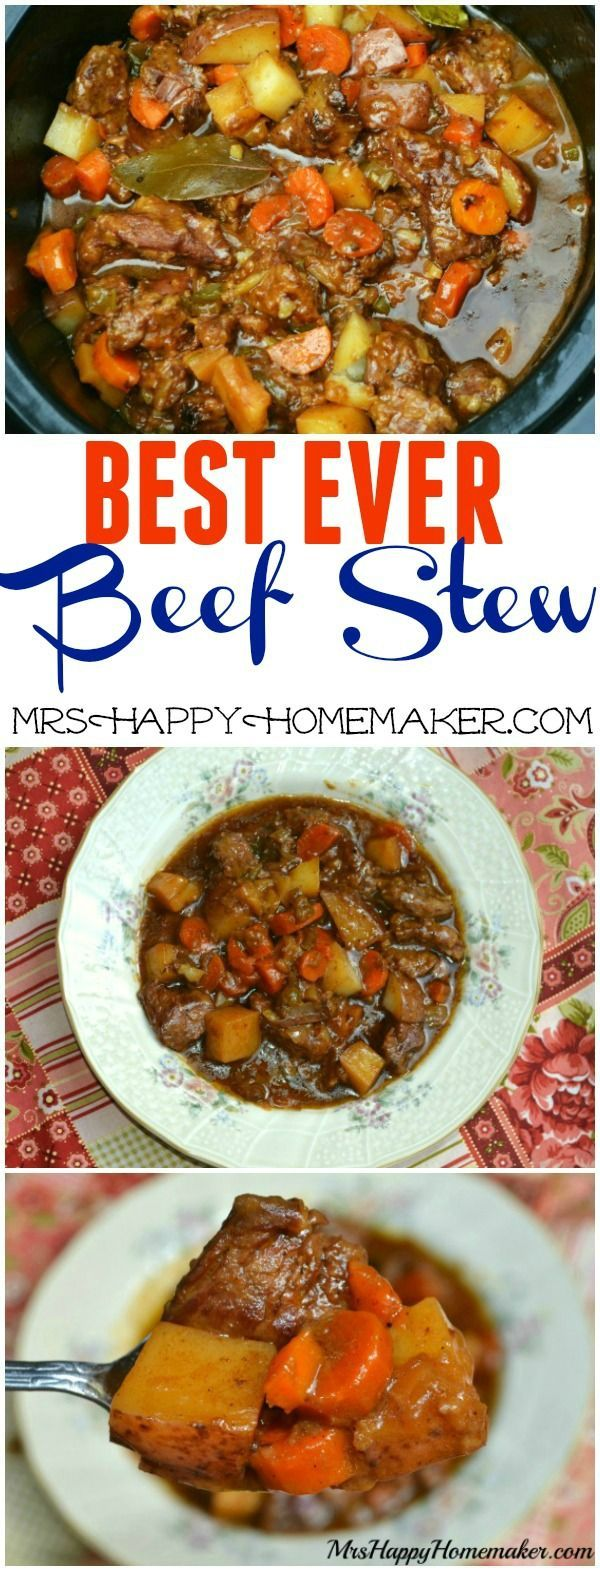 "BEST EVER Beef Stew - ""This is the #1 most popular recipe on my blog & I can see why. It's SO ADDICTIVELY DELICIOUS! Just read the comments on this recipe & see for yourself!"" 